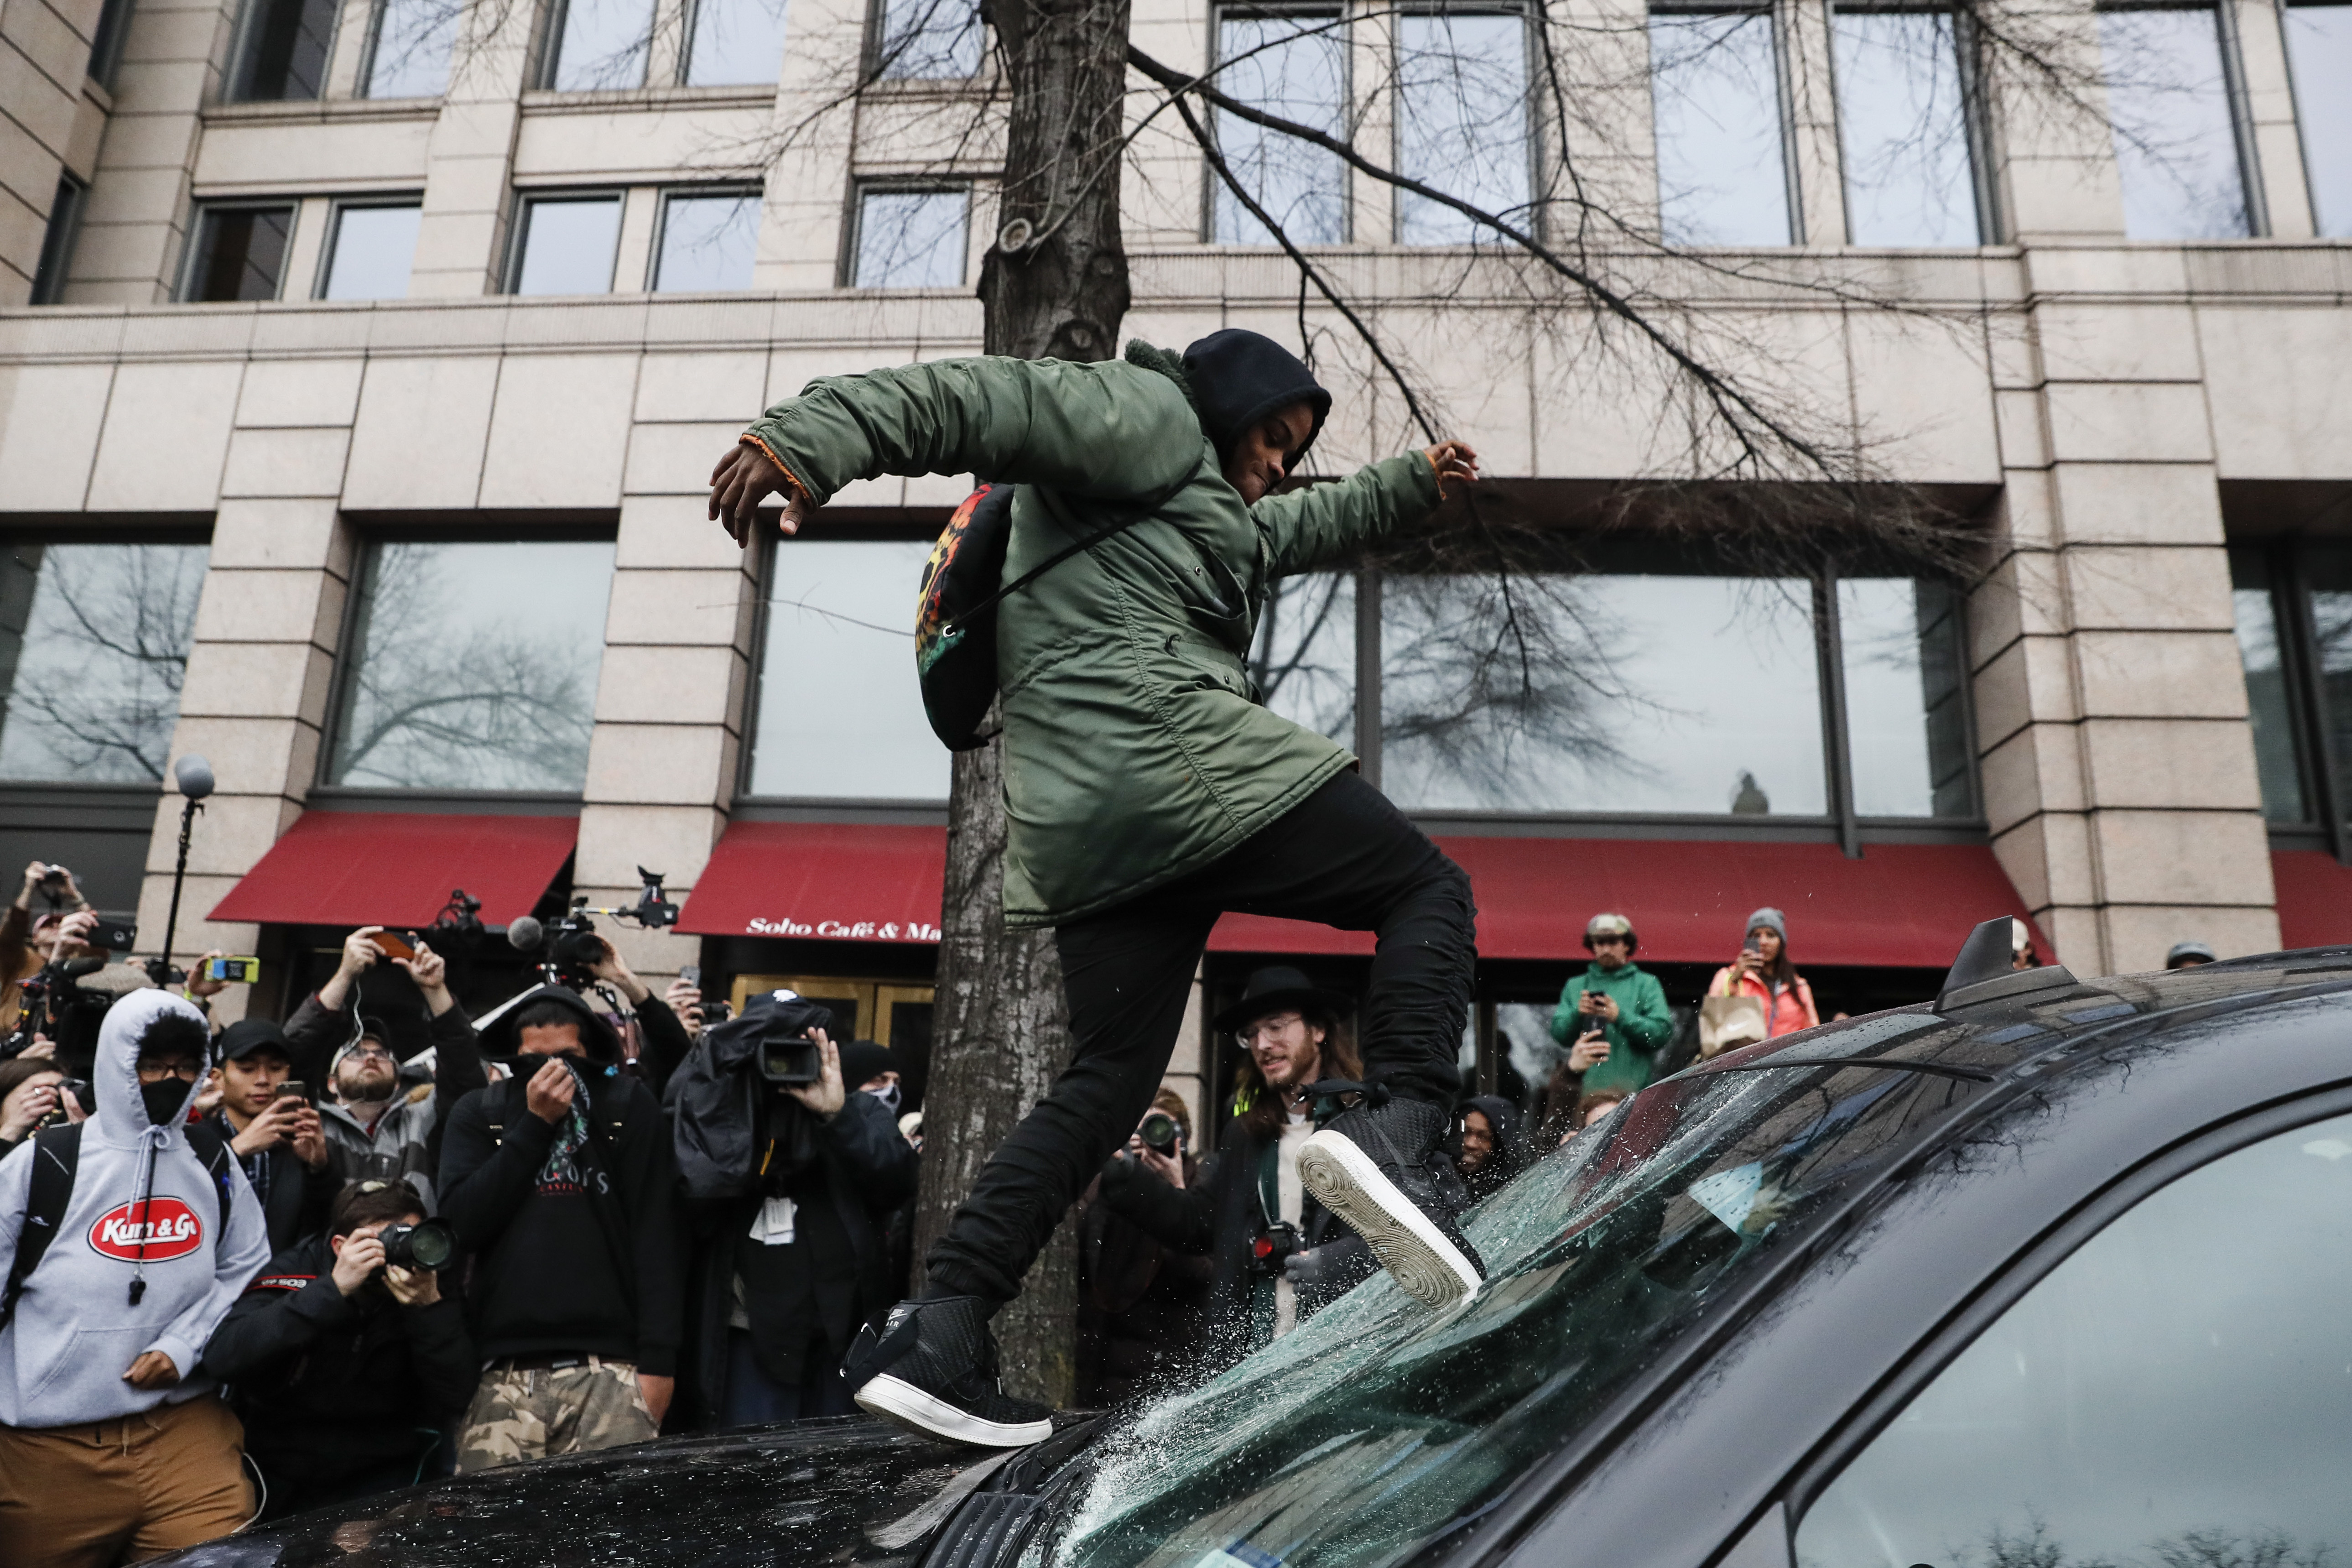 A protestor kicks in a windshield during a demonstration in Washington on Jan. 20, 2017, after the inauguration of President Donald Trump. (AP Photo/John Minchillo)